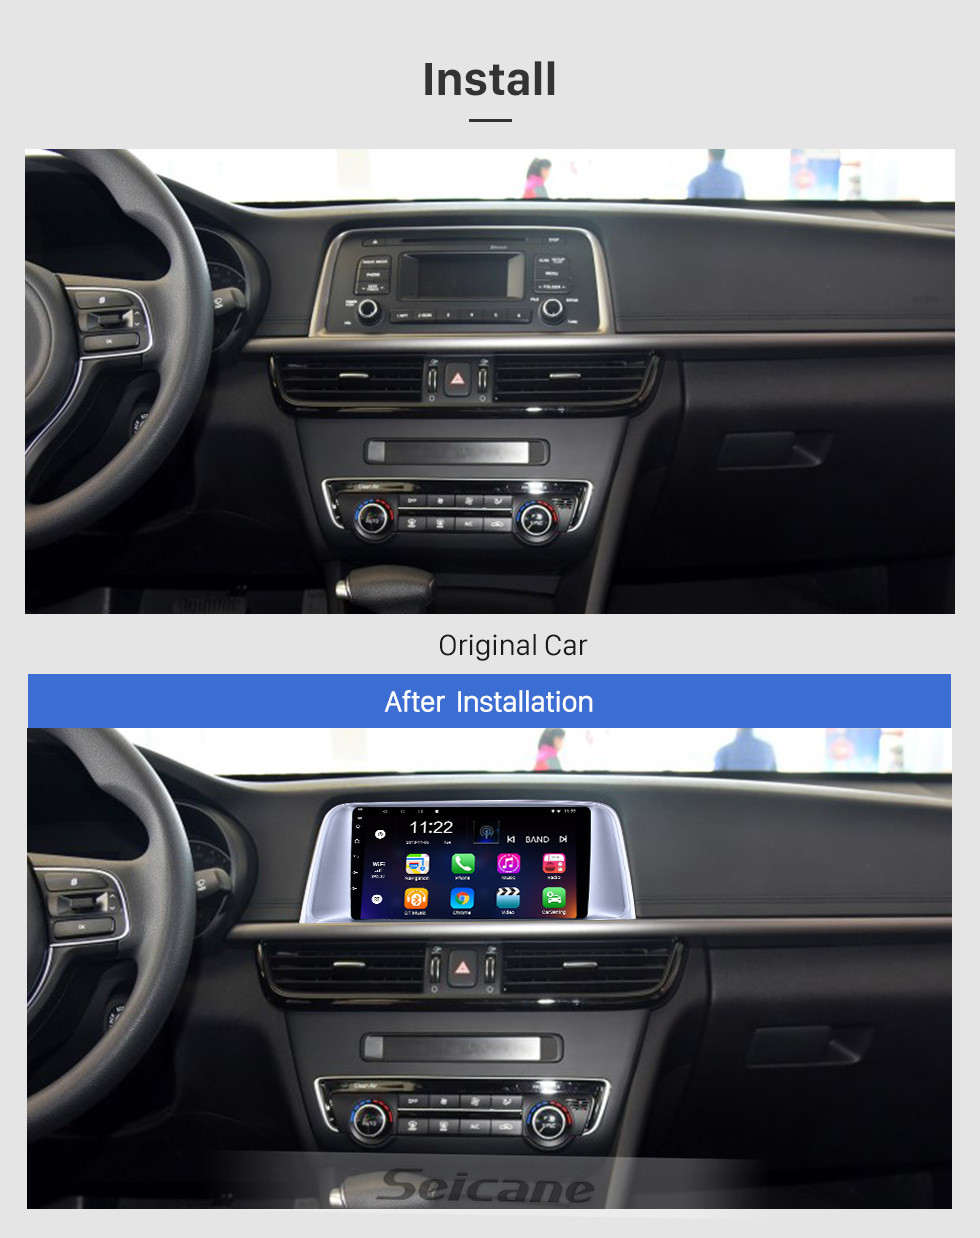 Seicane HD Touchscreen 9 inch Android 10.0 GPS Navigation Radio for 2015 2016 2017 Kia K5 with Bluetooth USB WIFI Music support Carplay SWC 3G Backup camera